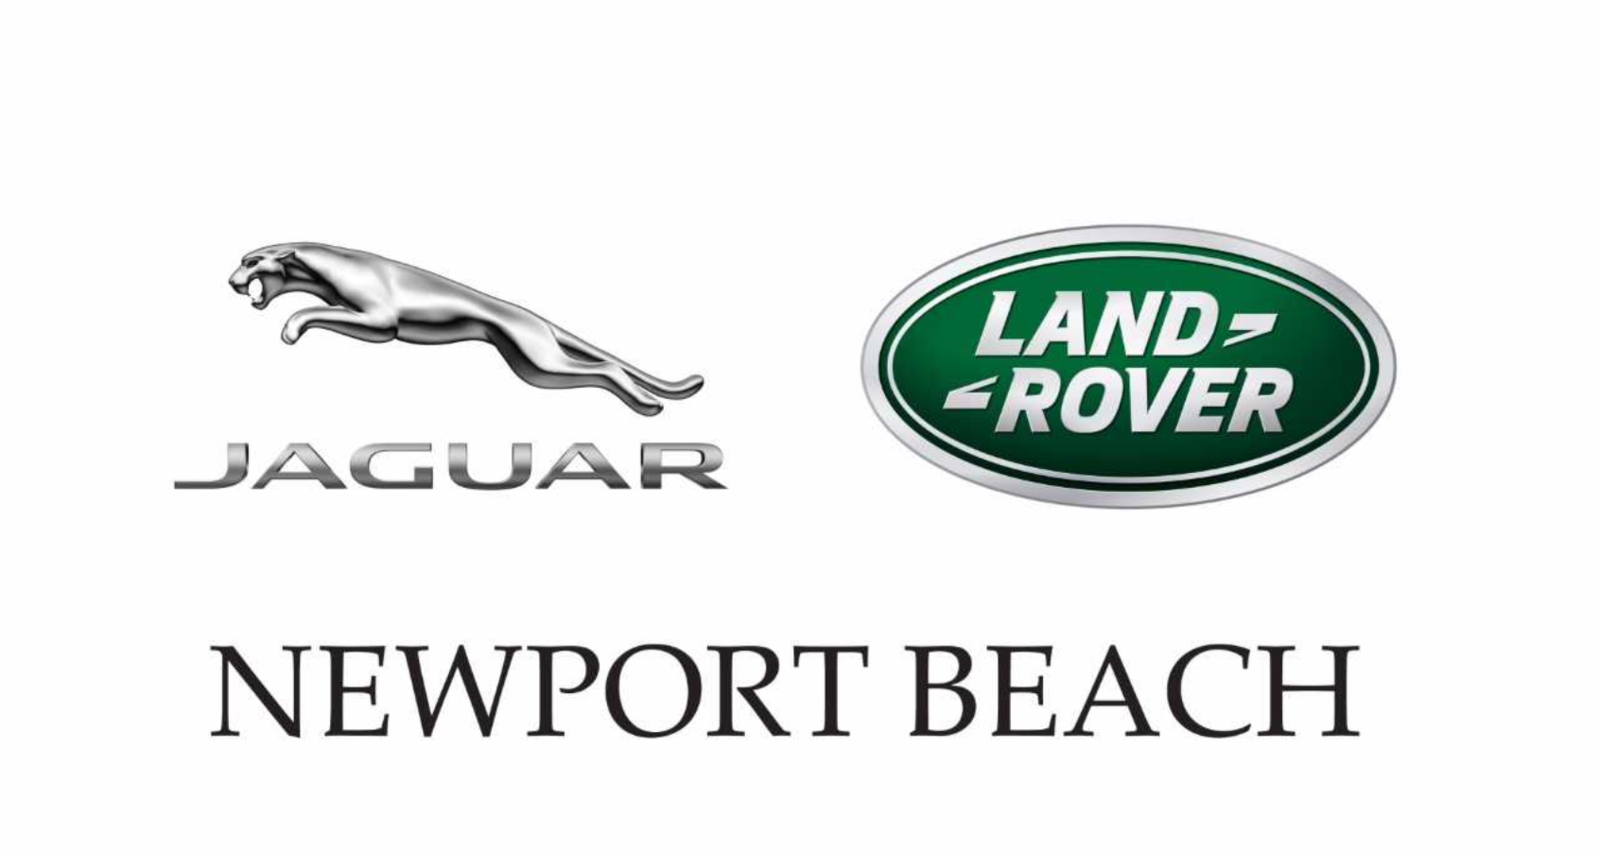 Perfect Jaguar Land Rover Newport Beach   Newport Beach, CA: Read Consumer Reviews,  Browse Used And New Cars For Sale